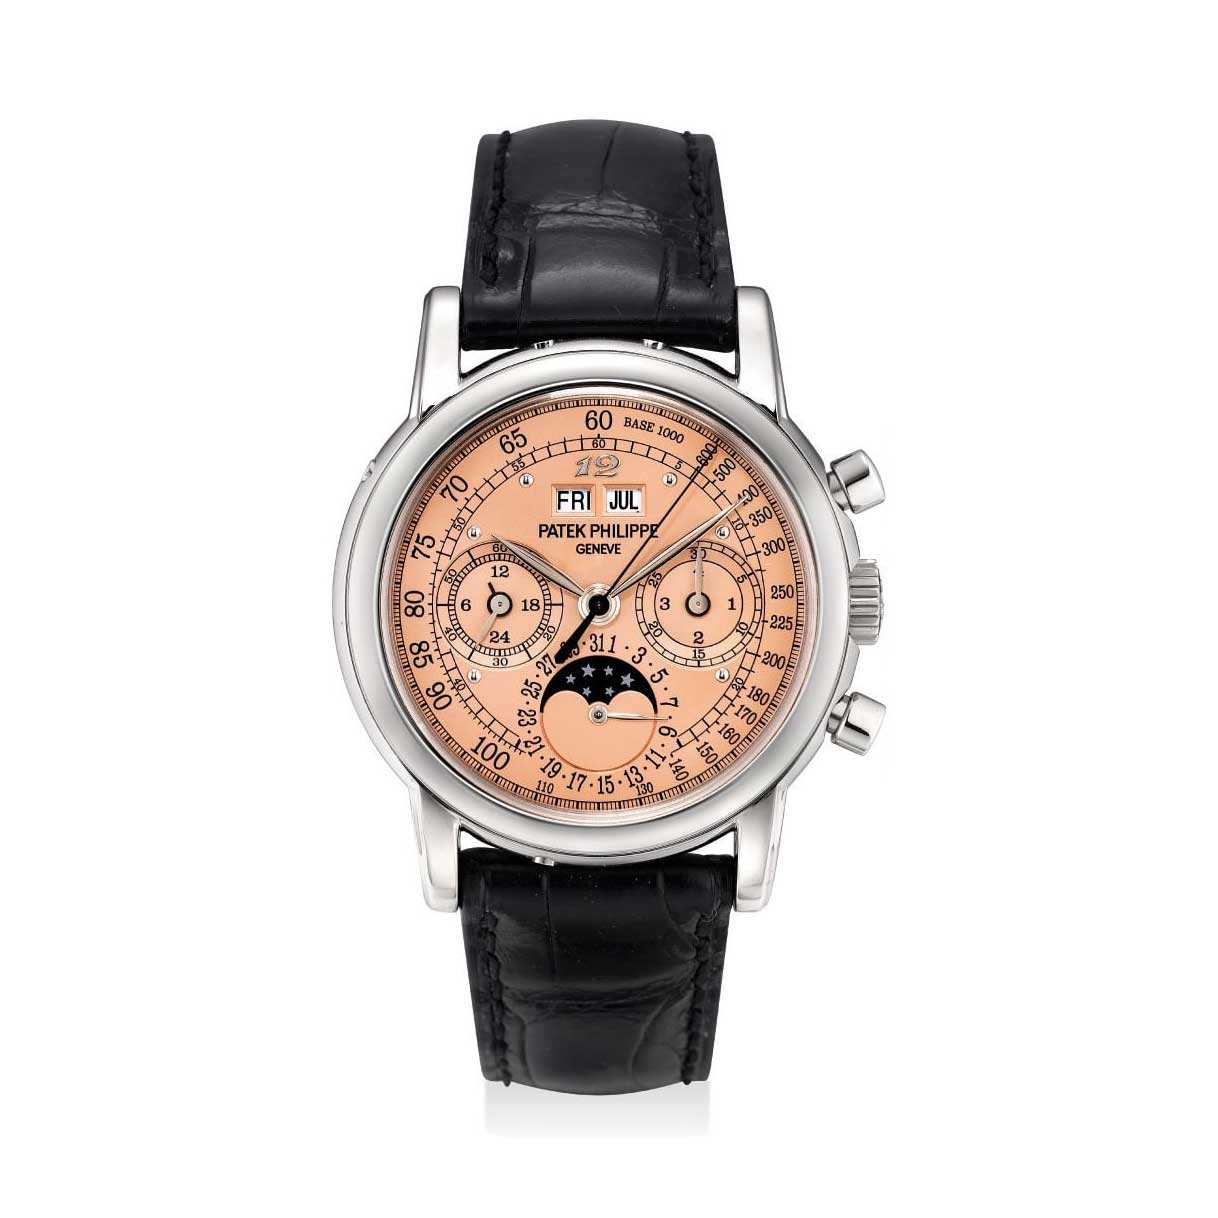 Formerly in the collection of Eric Clapton, CBE, a white gold Patek Philippe ref. 3970 perpetual calendar chronograph wristwatch with special salmon tachymetre dial and applied Breguet numeral at 12 o'clock (Image: phillips.com)